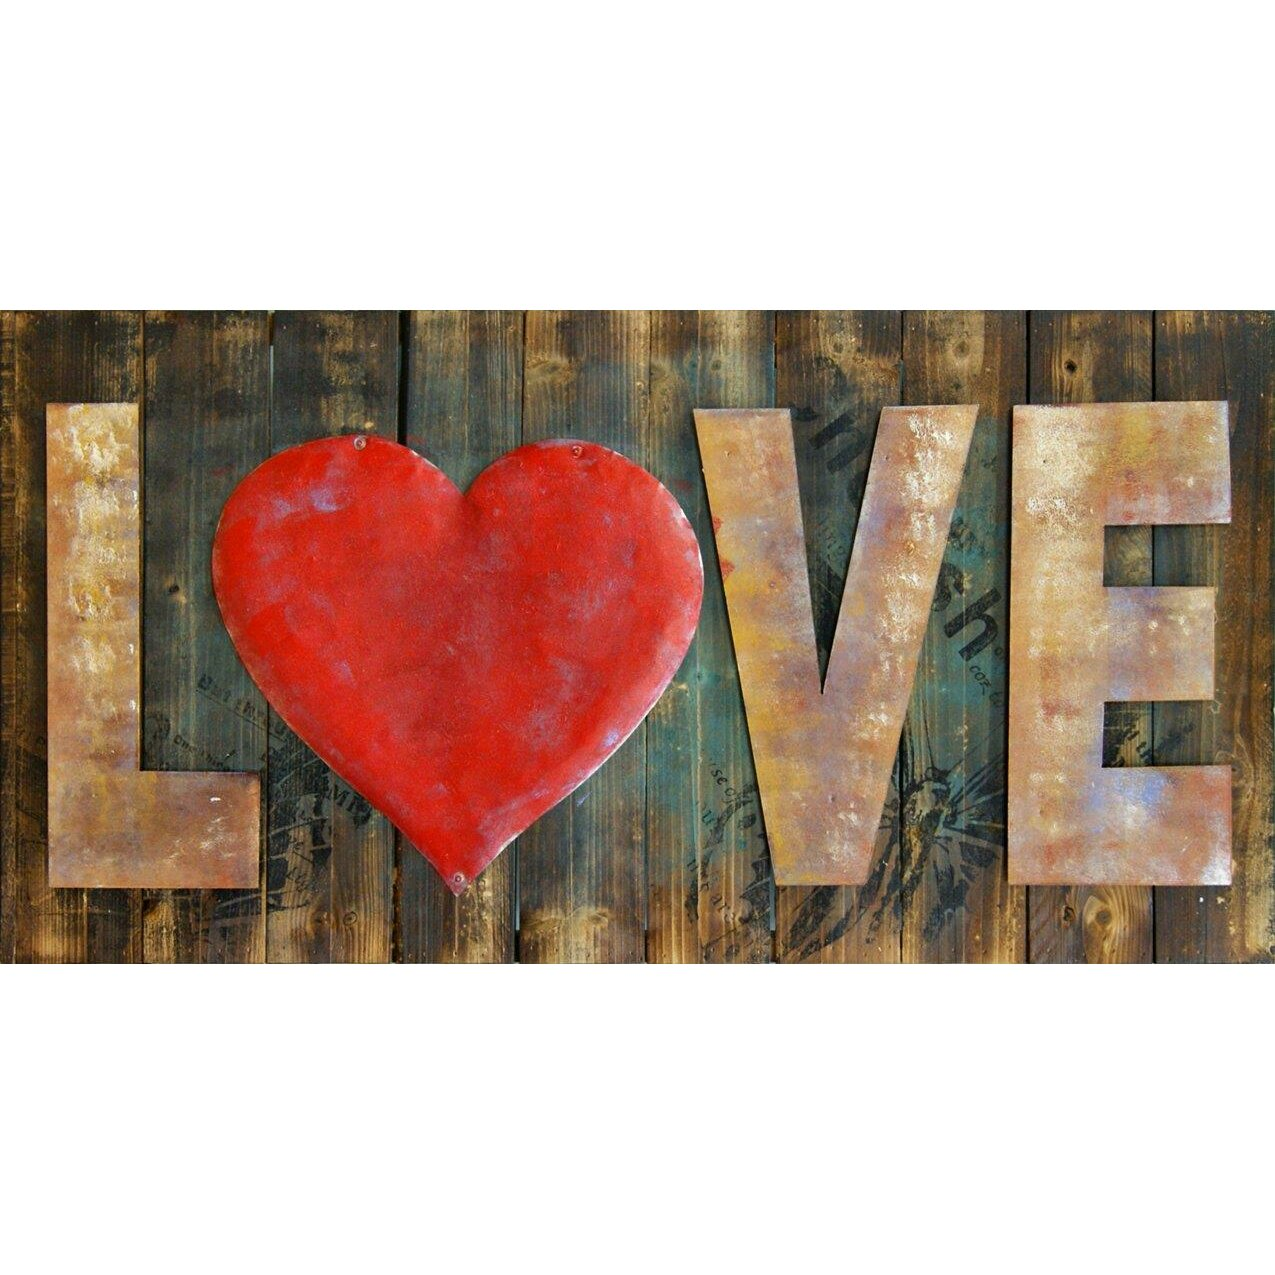 Wall decoration with hearts : Hdc international d love red heart wall decor reviews